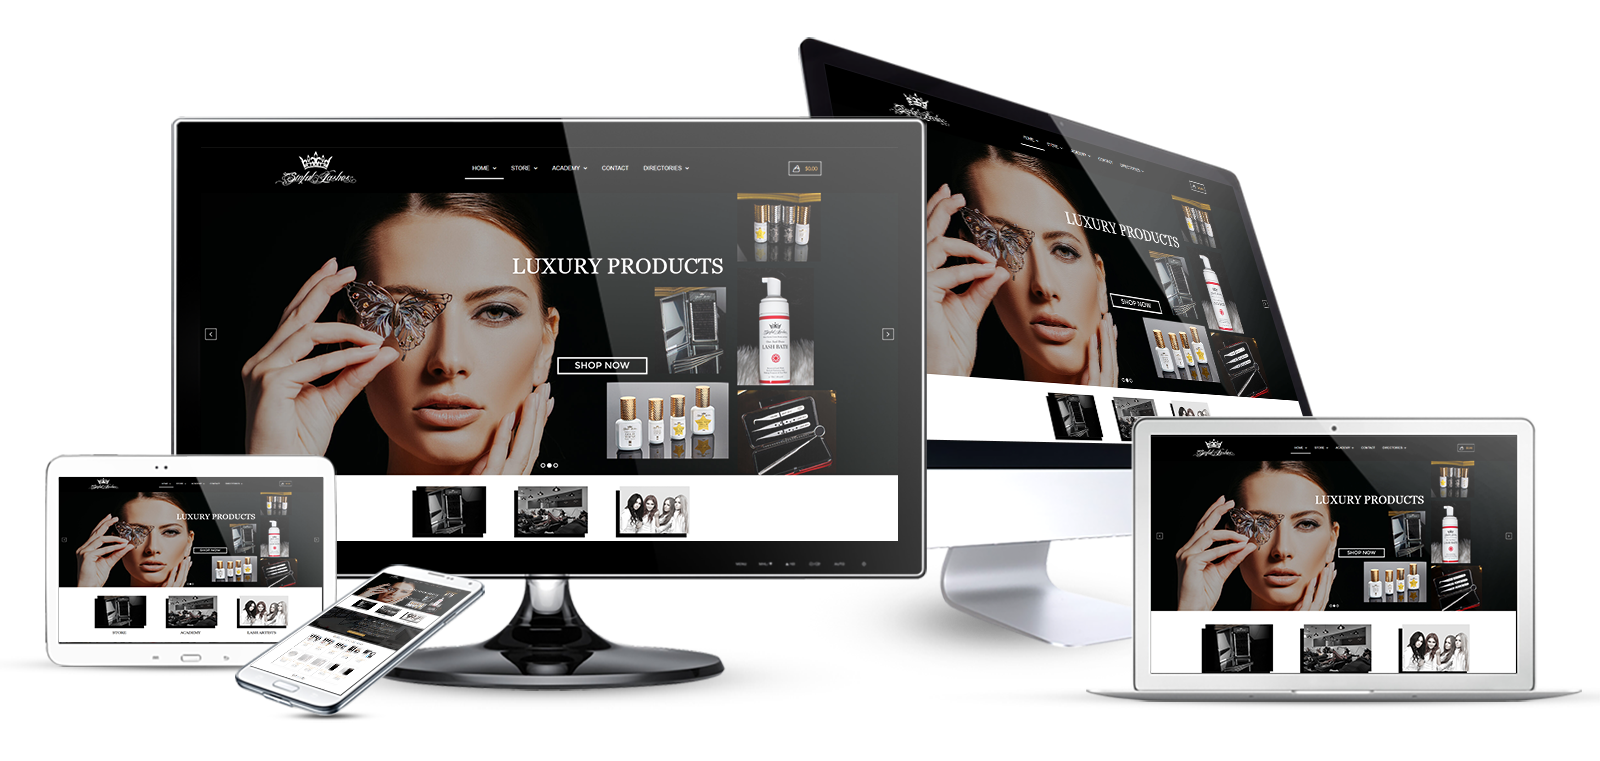 ecommerce website design eyelash extensions multi device